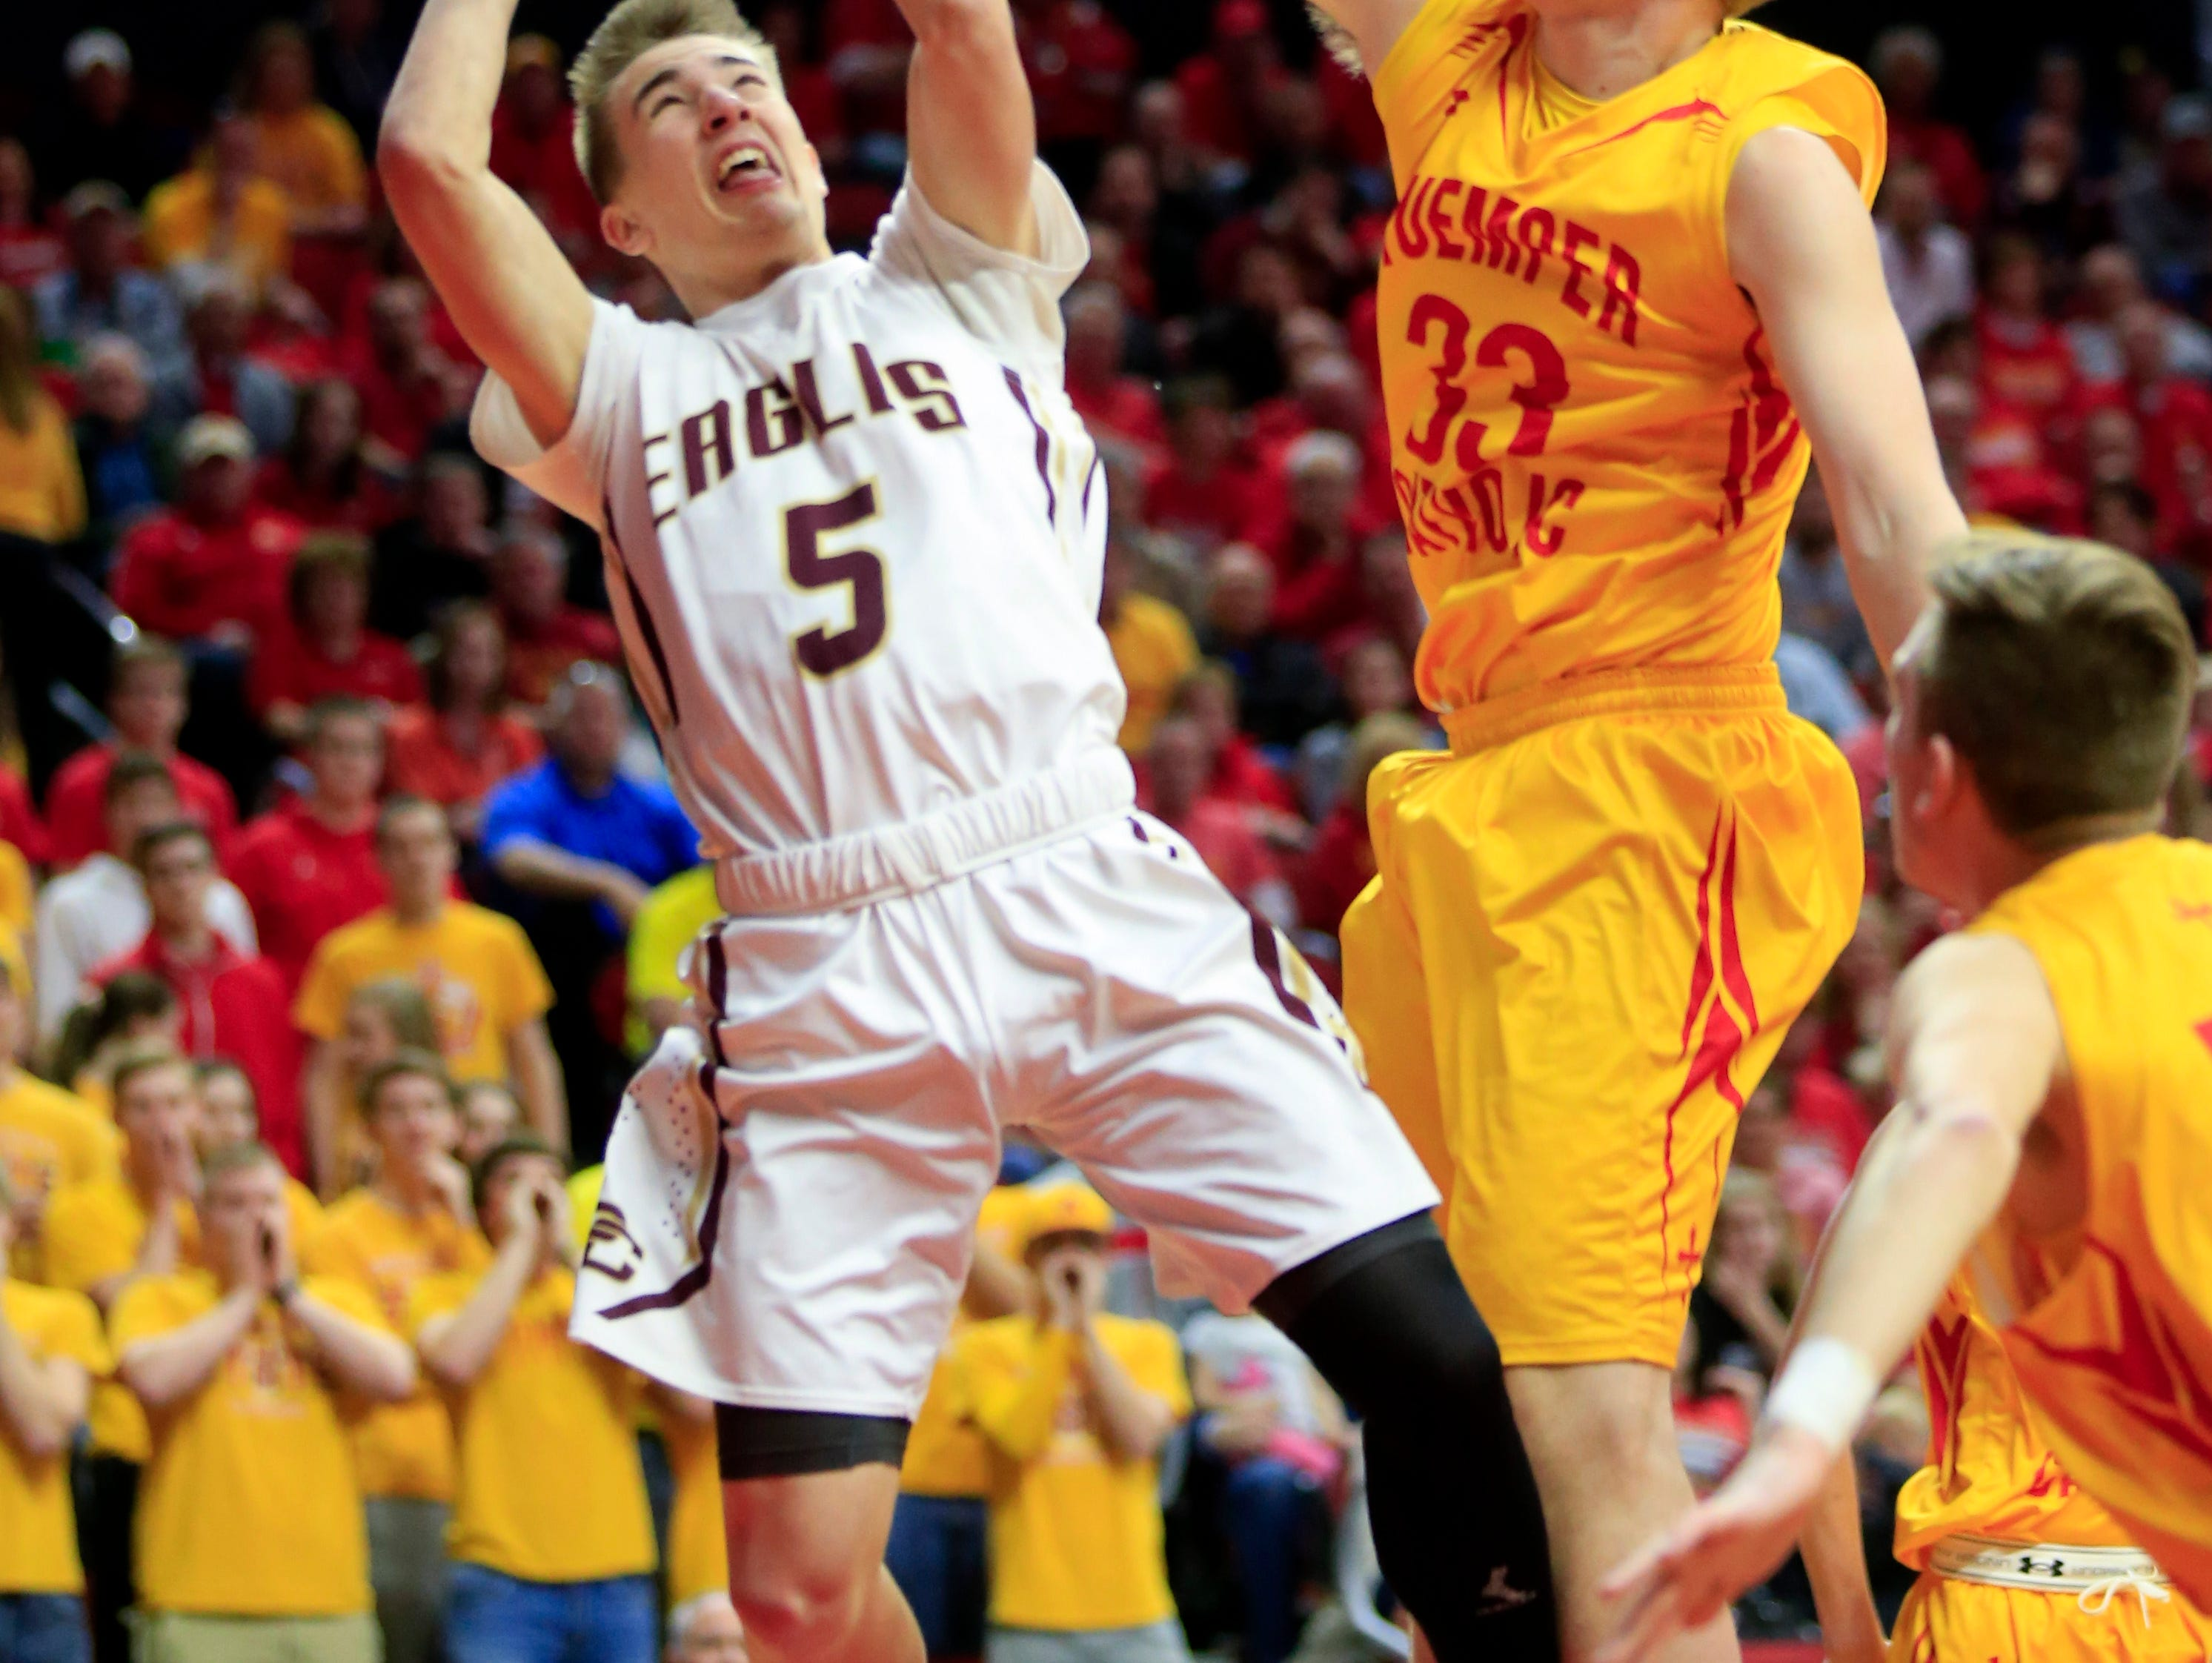 Levi Jungling of Pella Christian has a shot blocked by Matt Dentlinger of Kuemper Catholic in the 2A semifinal game Thursday, March 9, 2017.